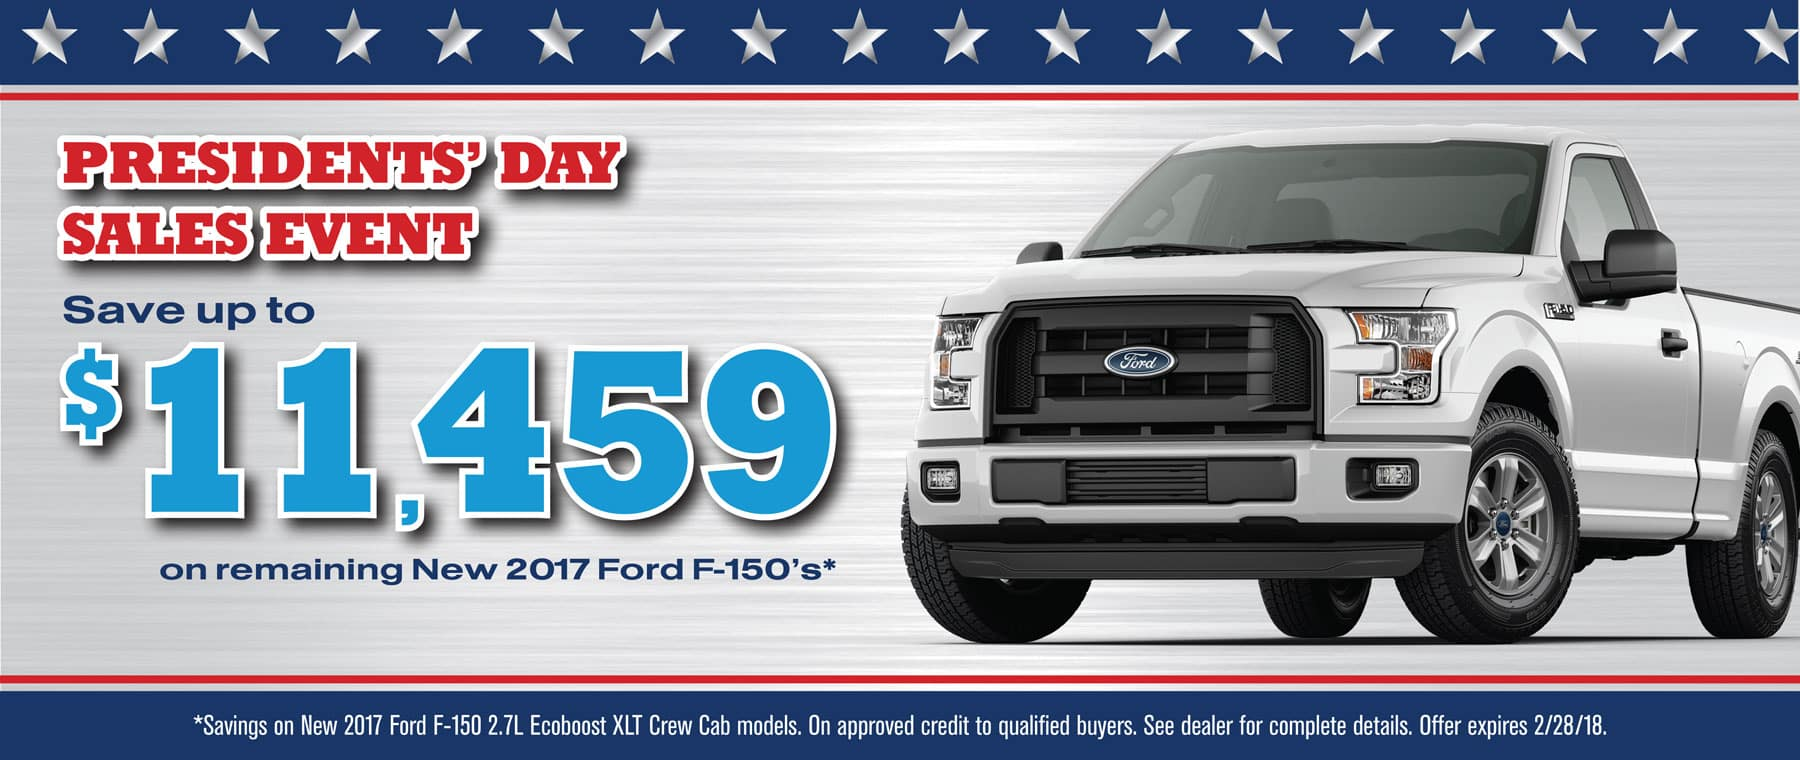 Ford Dealership In Macon Ga Best Image FiccioNet - Ford macon ga